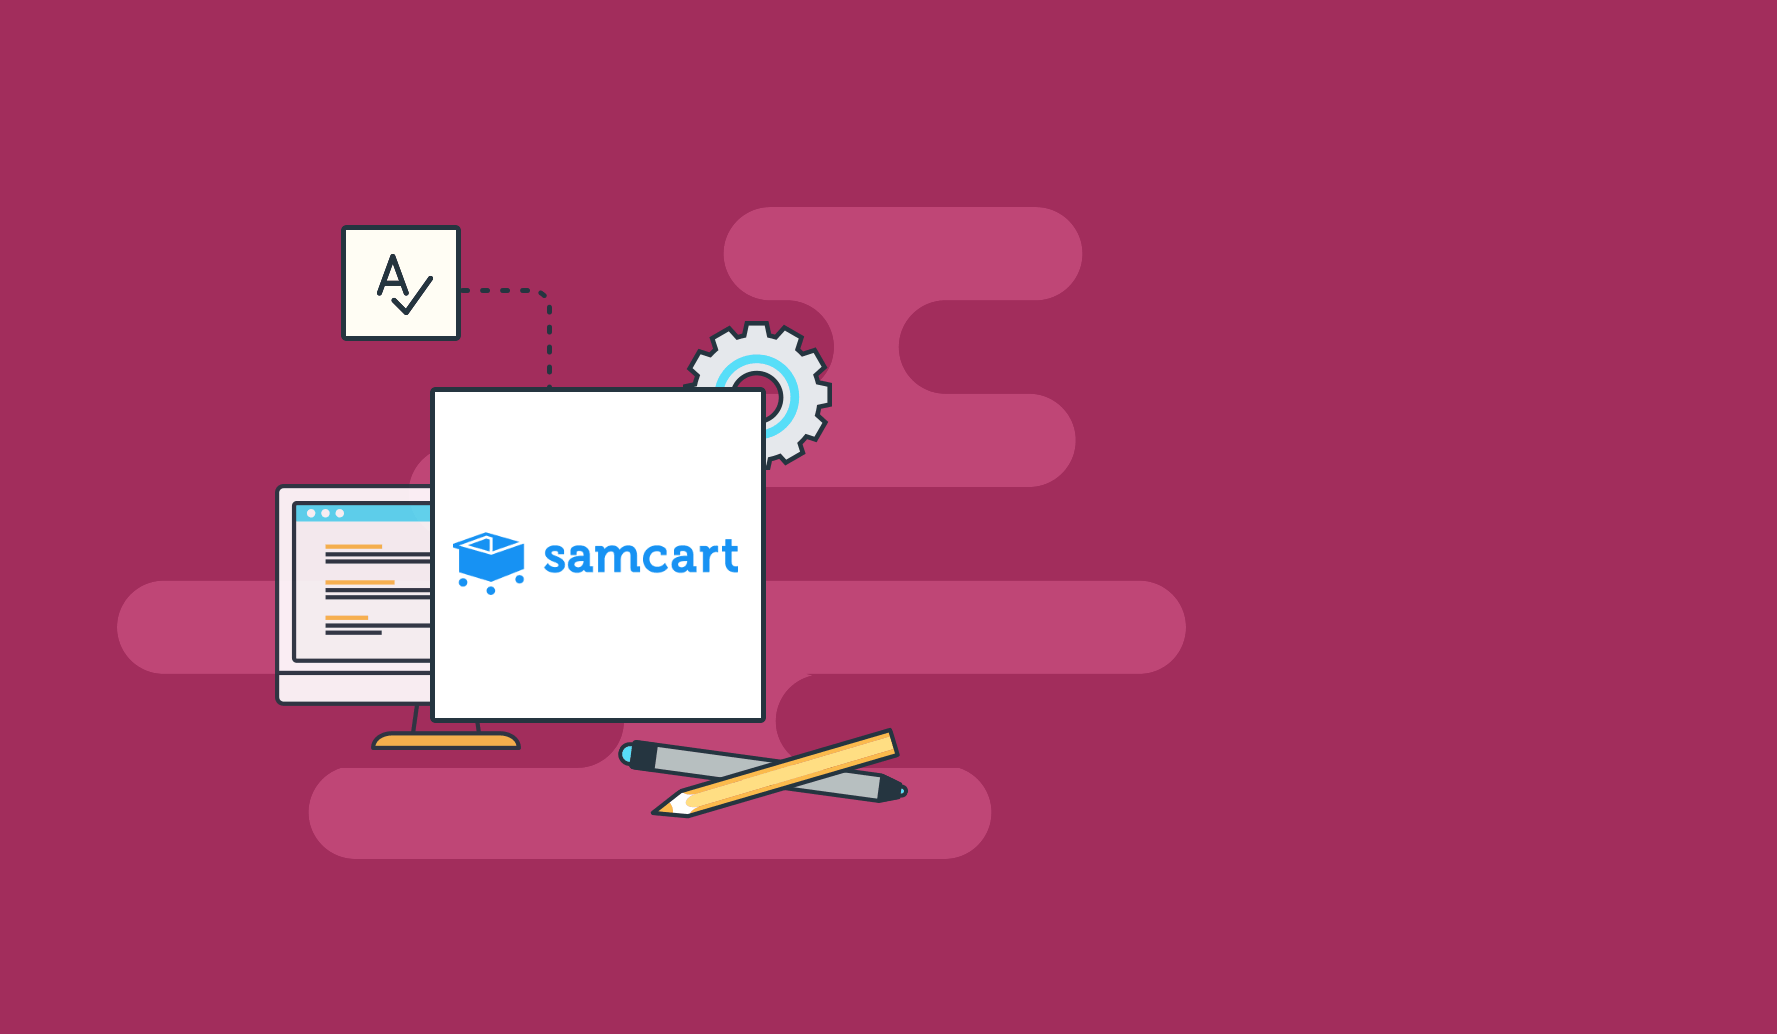 Dimensions In Mm Samcart Landing Page Software